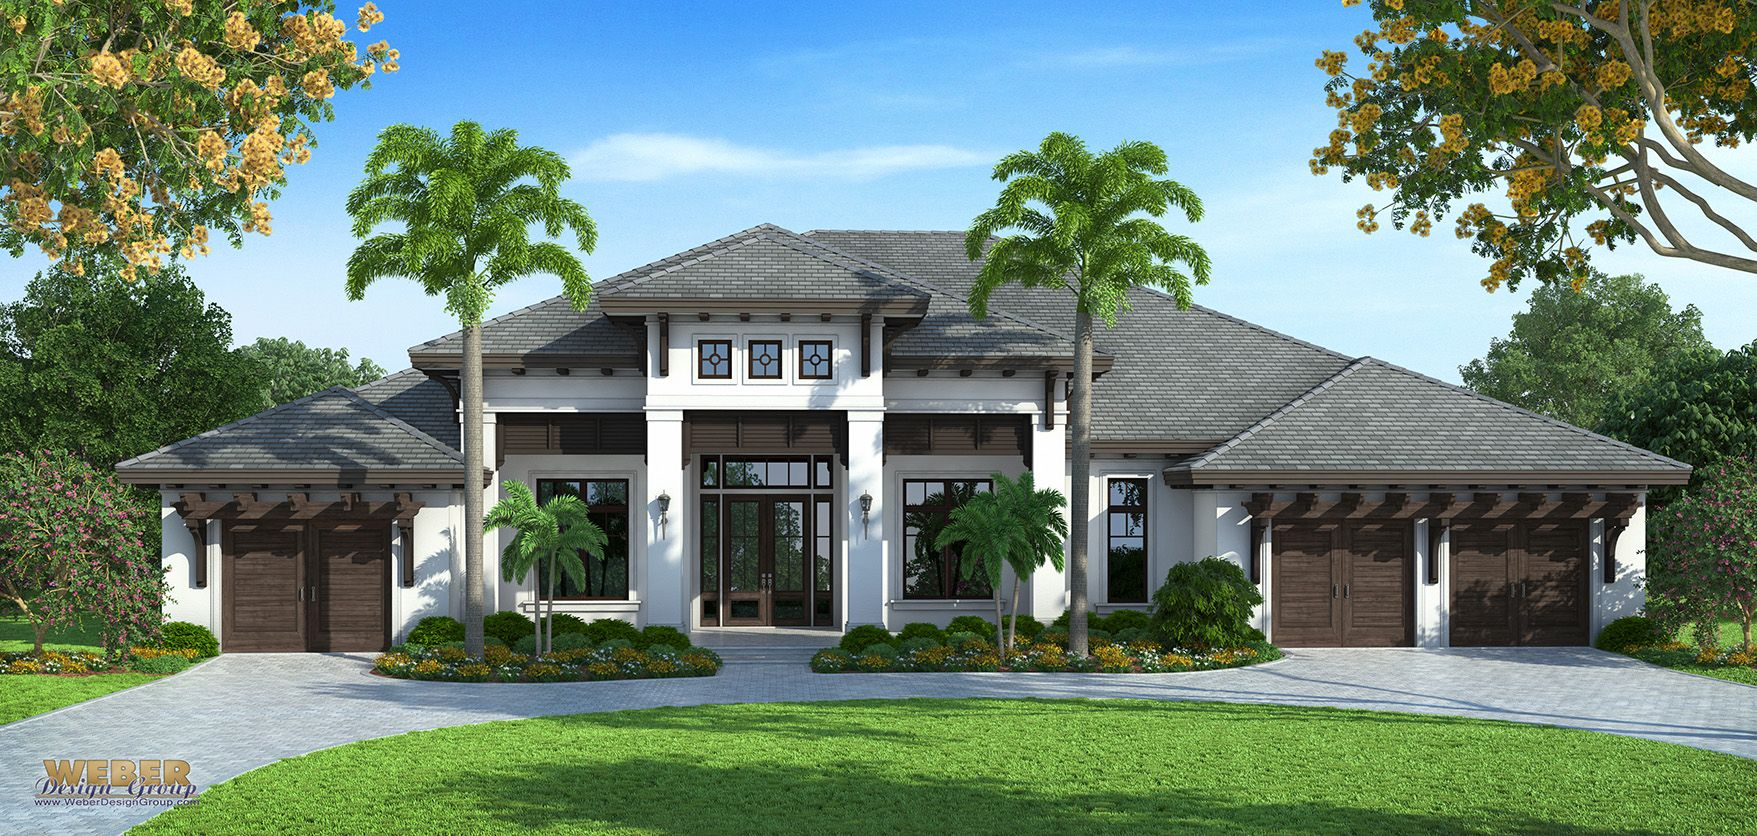 Transitional west indies style house plans by weber design for Home plans and designs